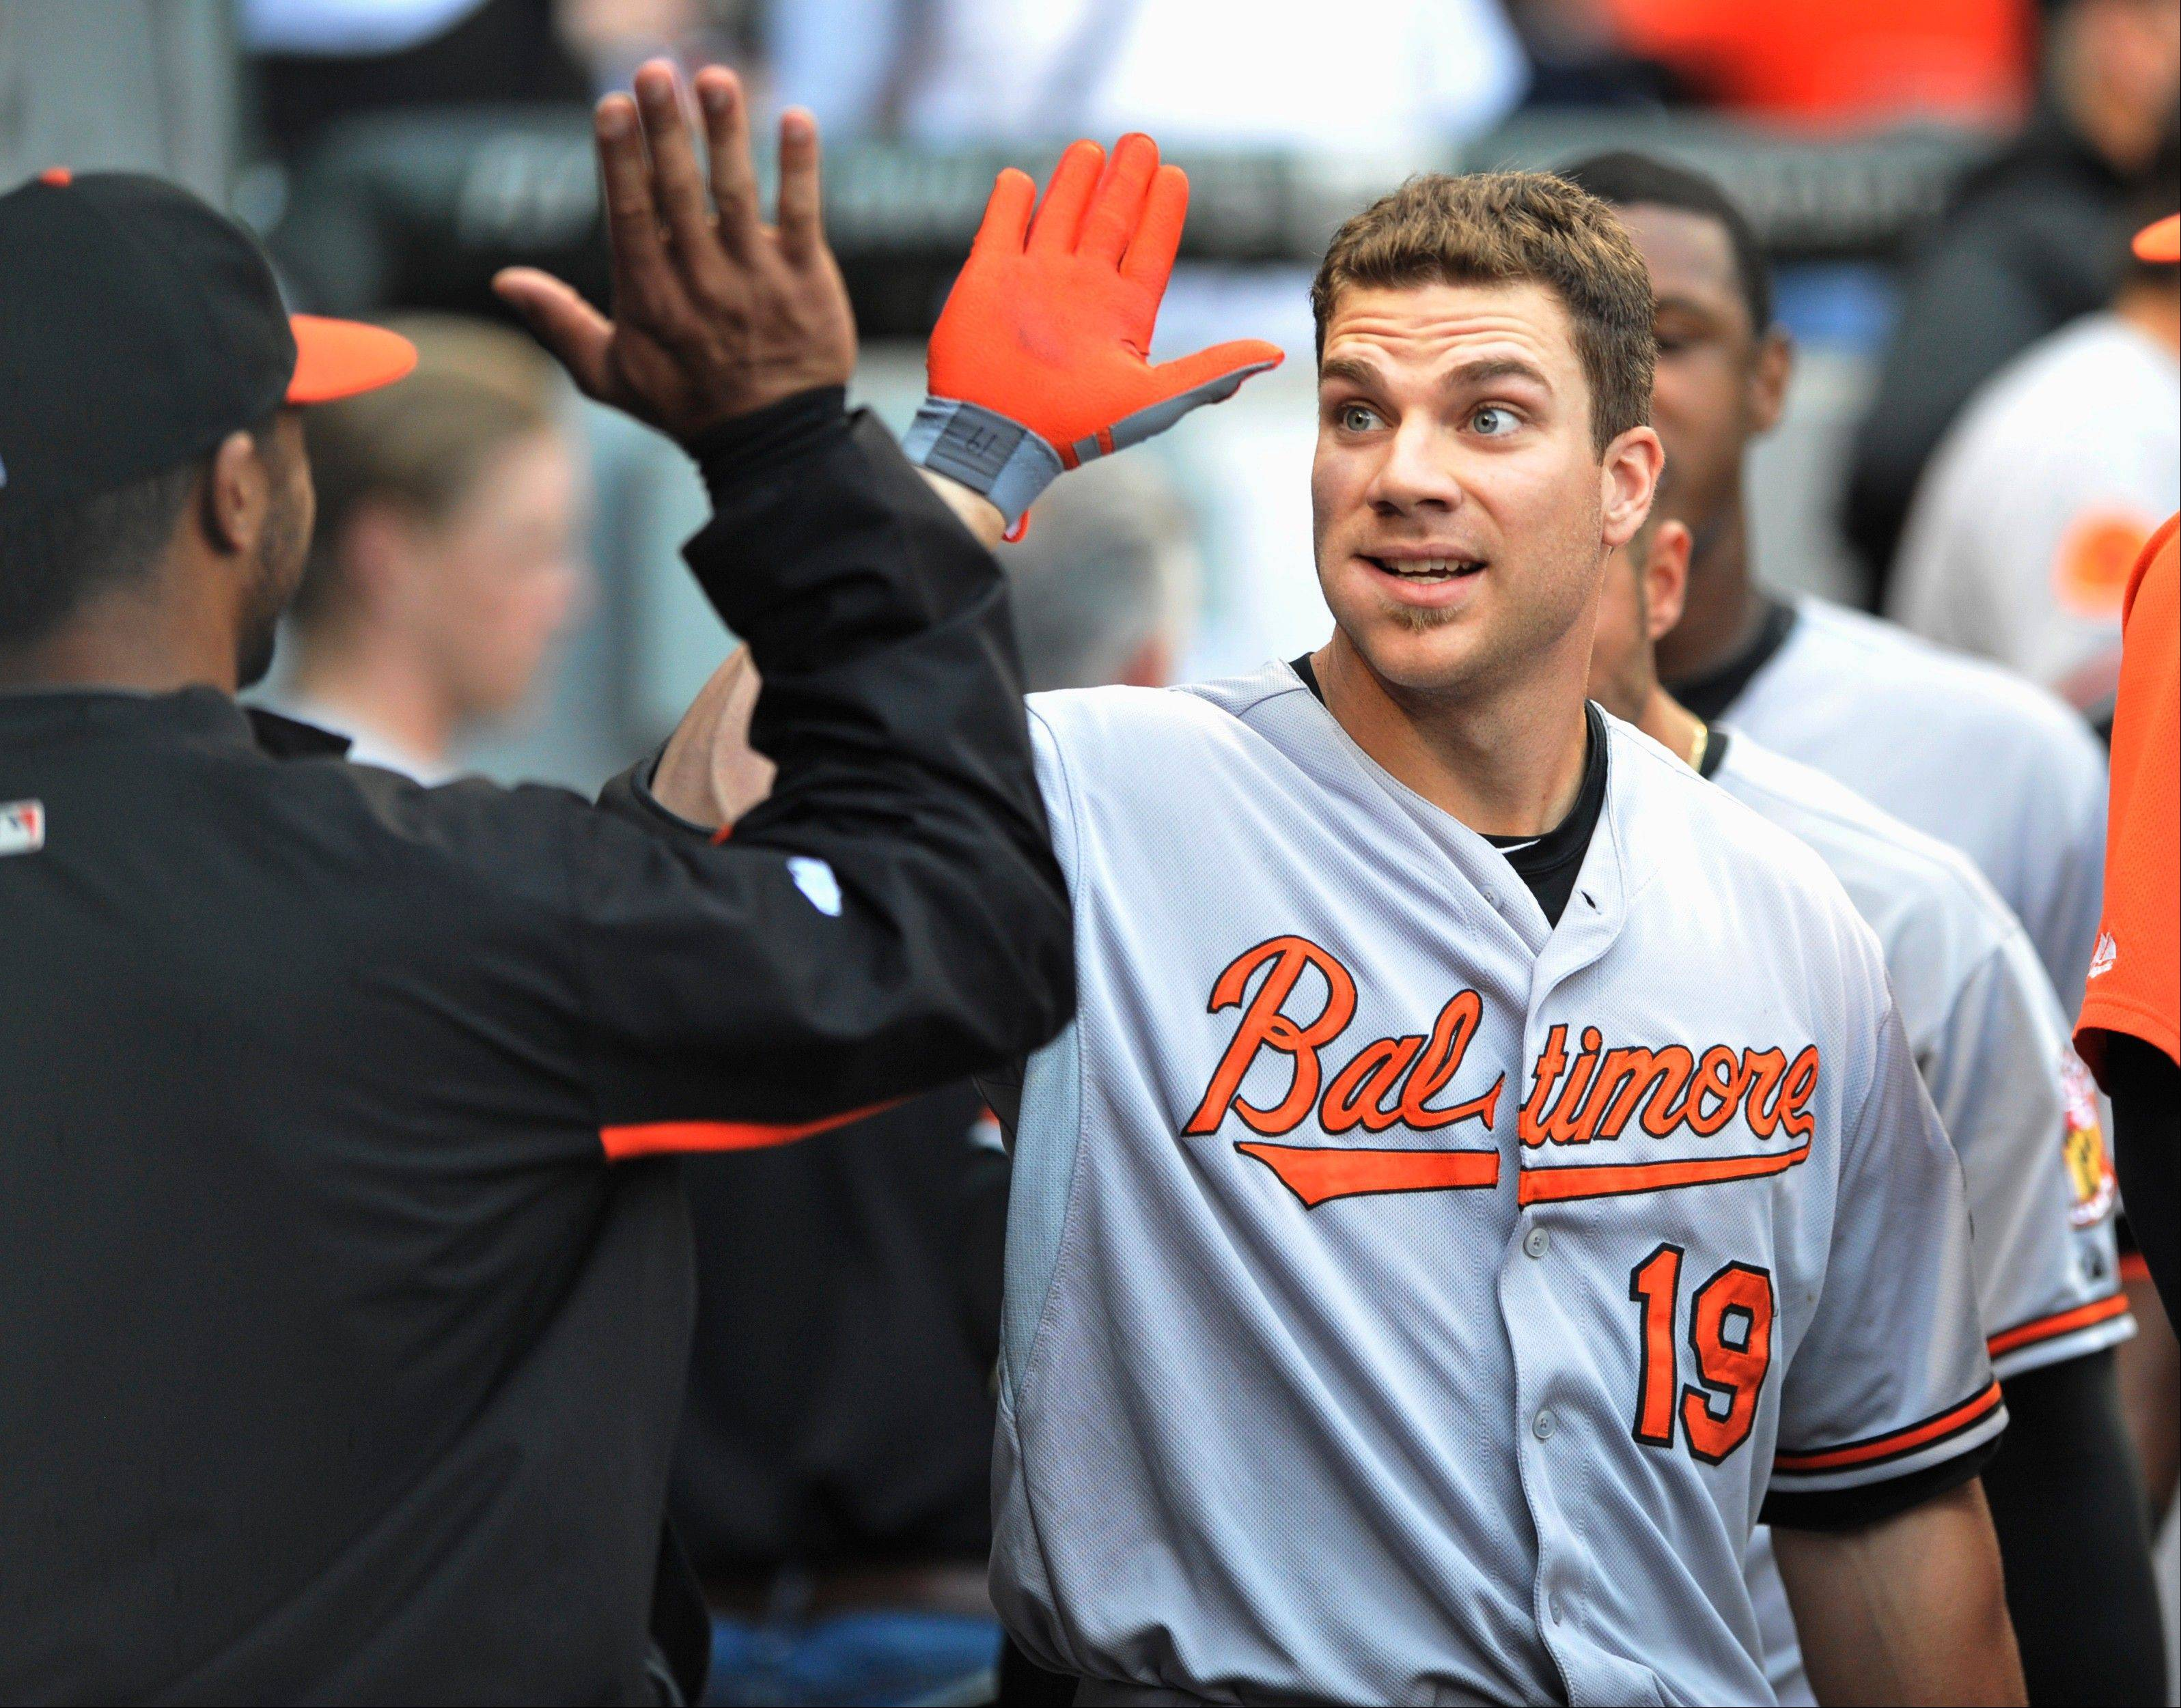 Baltimore Orioles first baseman Chris Davis drew more votes than any other player for the 2013 All-Star Game.